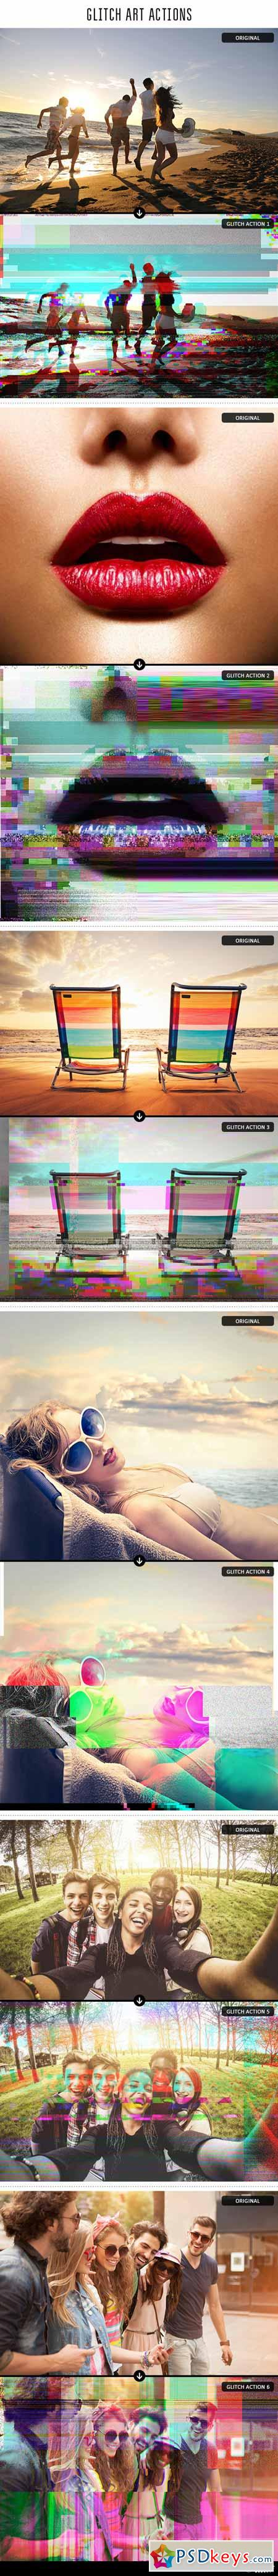 Glitch Art Photoshop Actions 11455182